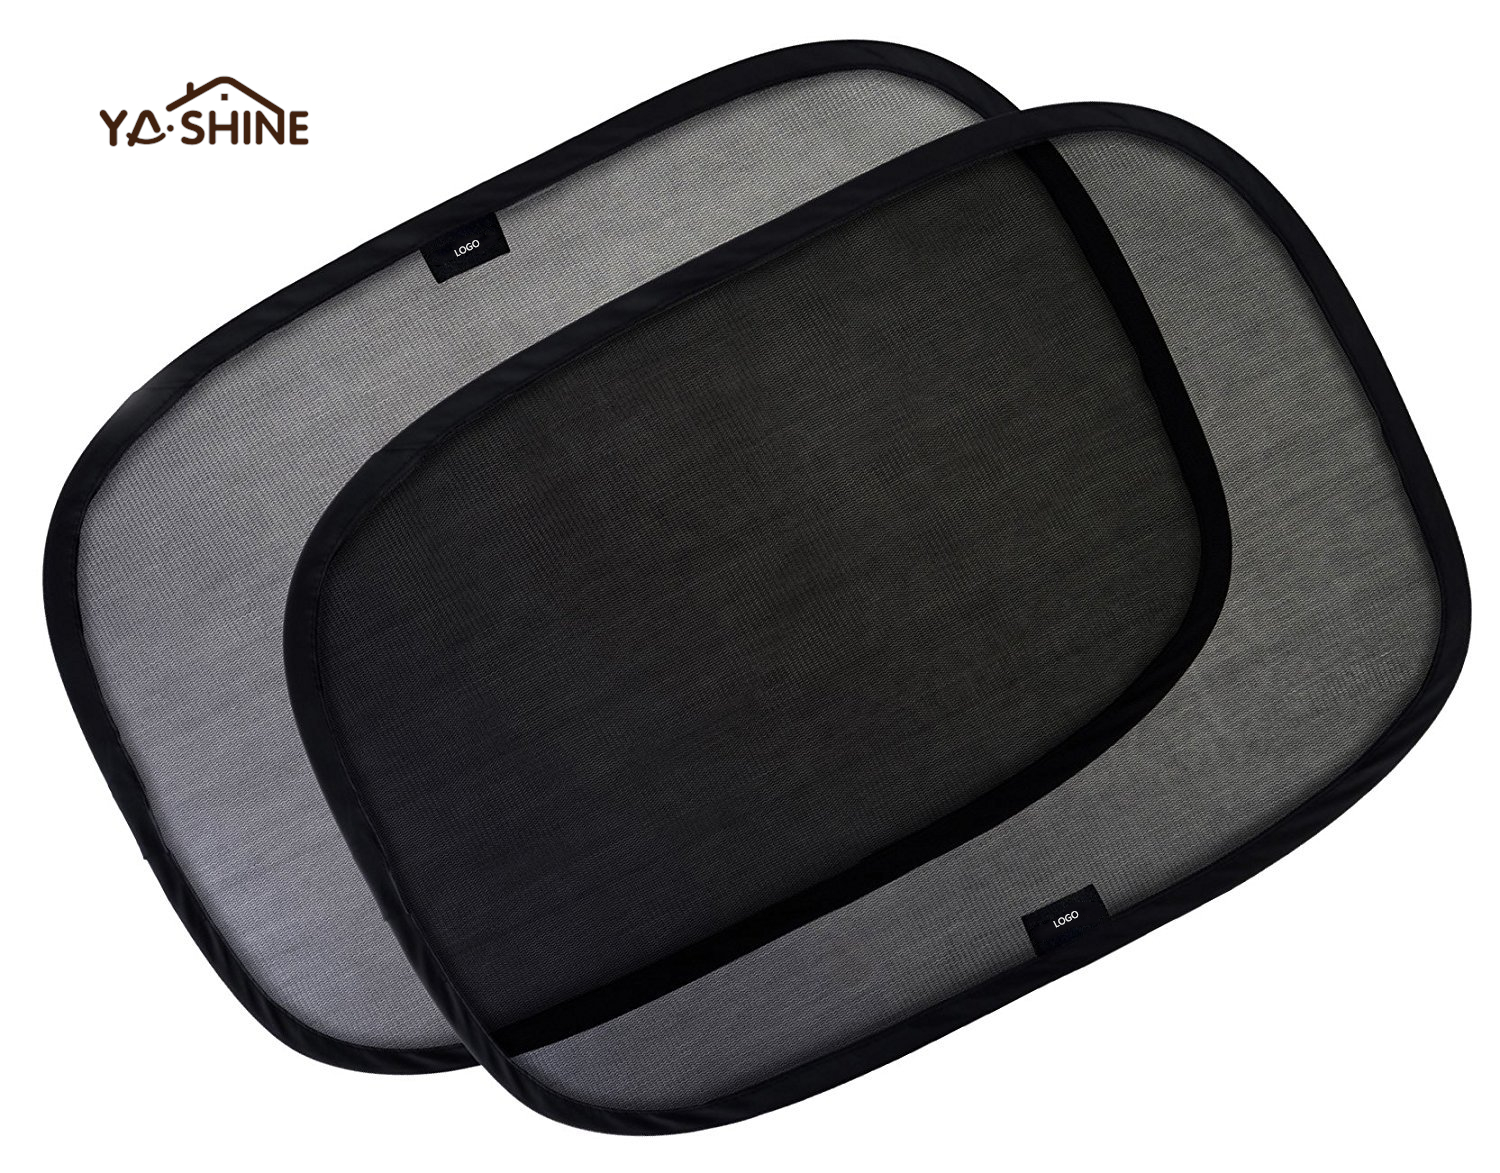 YA SHINE Cling Sunshade for Car Windows  Prevent Sun Glare and UV Rays for Your Child